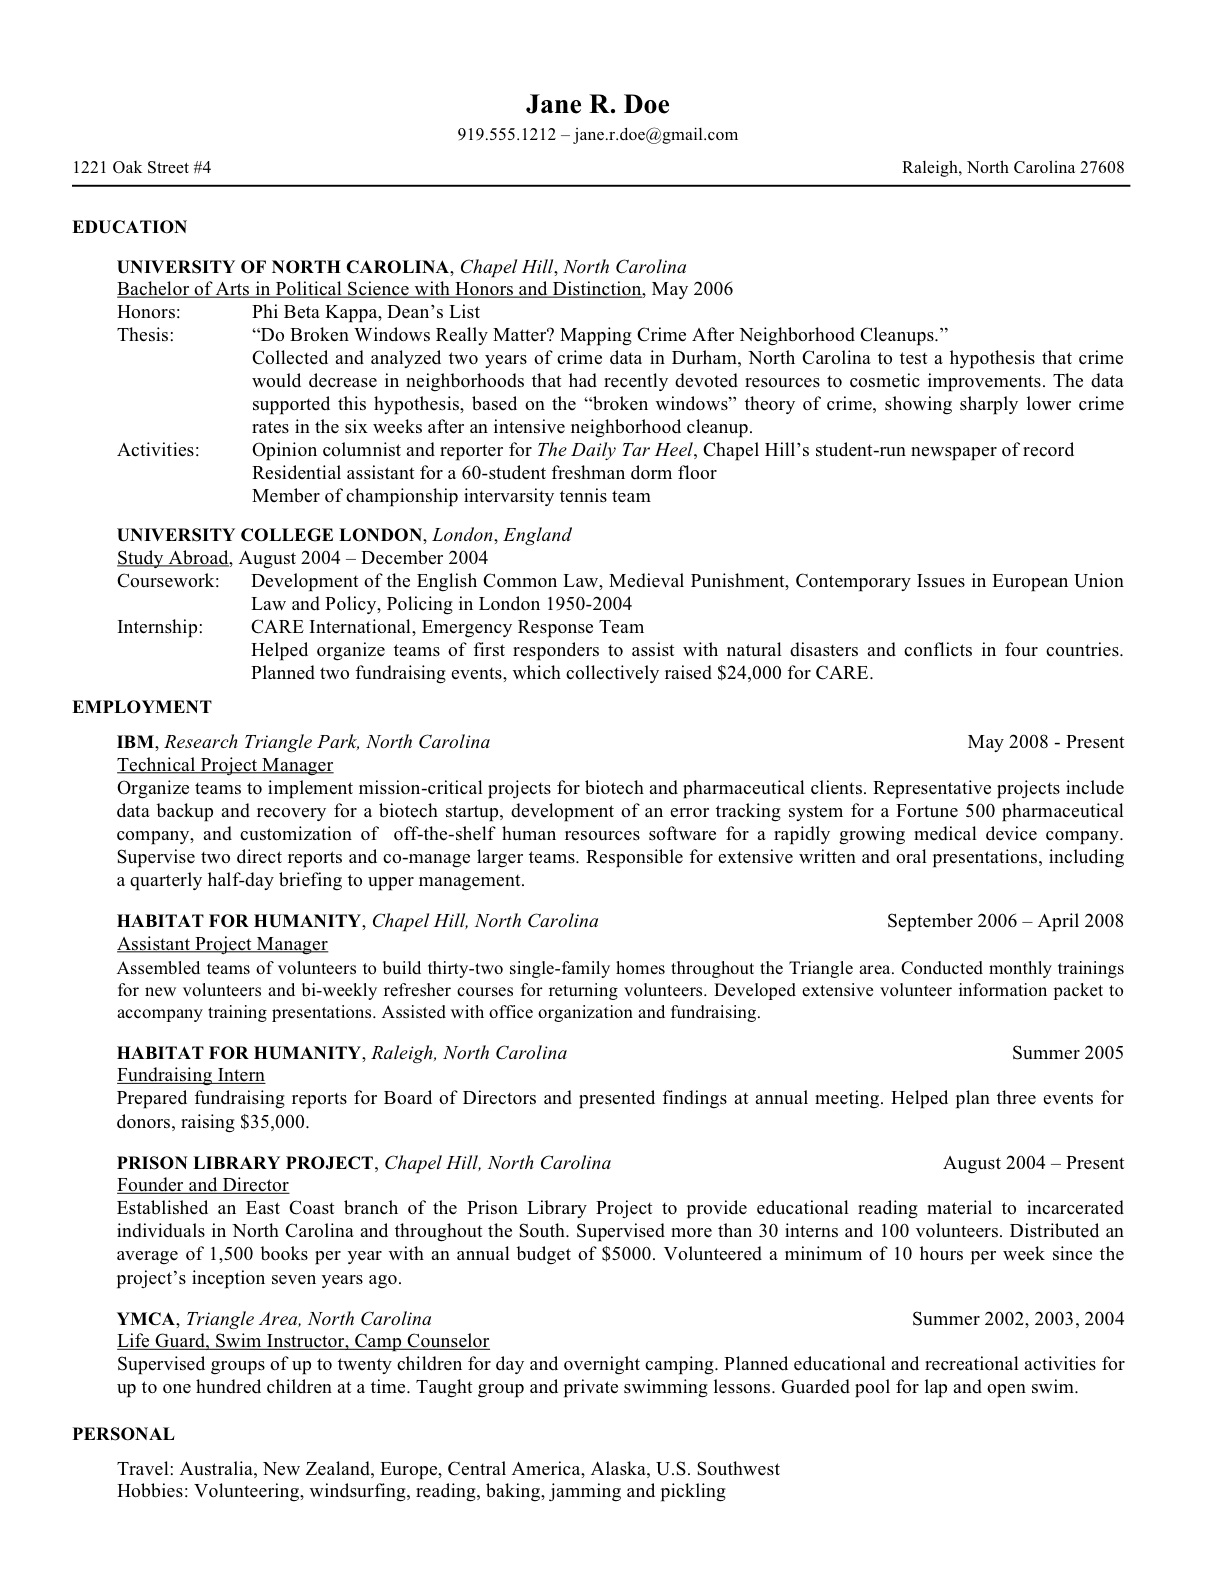 Resume Format Law School Jane's revised resume